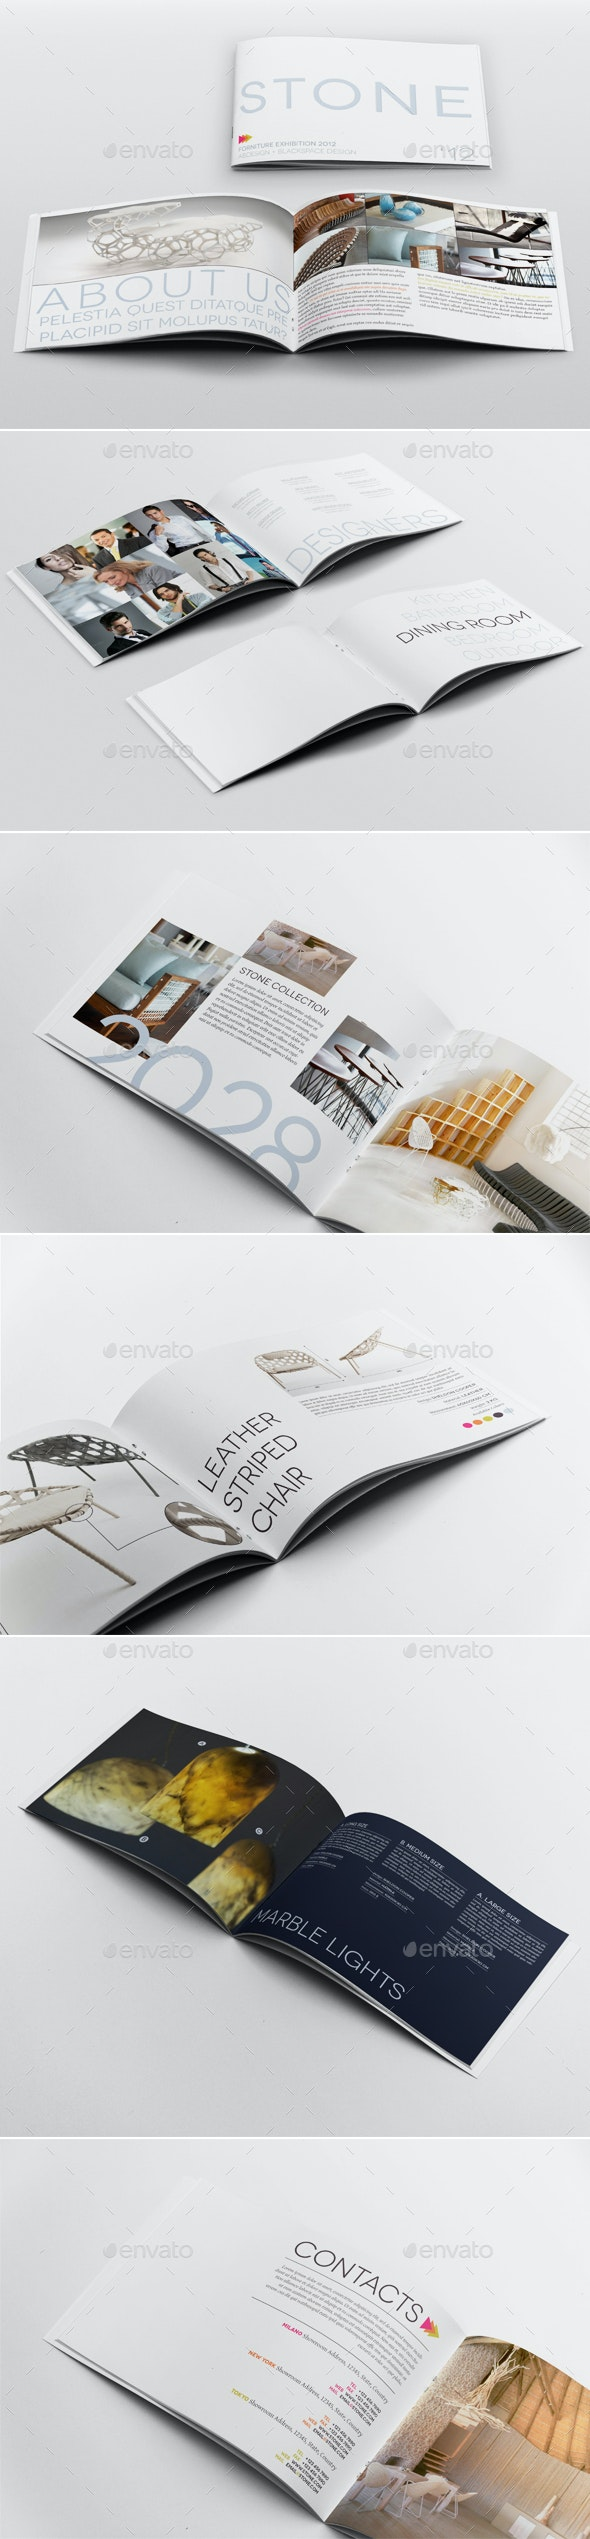 A5 Product Catalogue - Catalogs Brochures